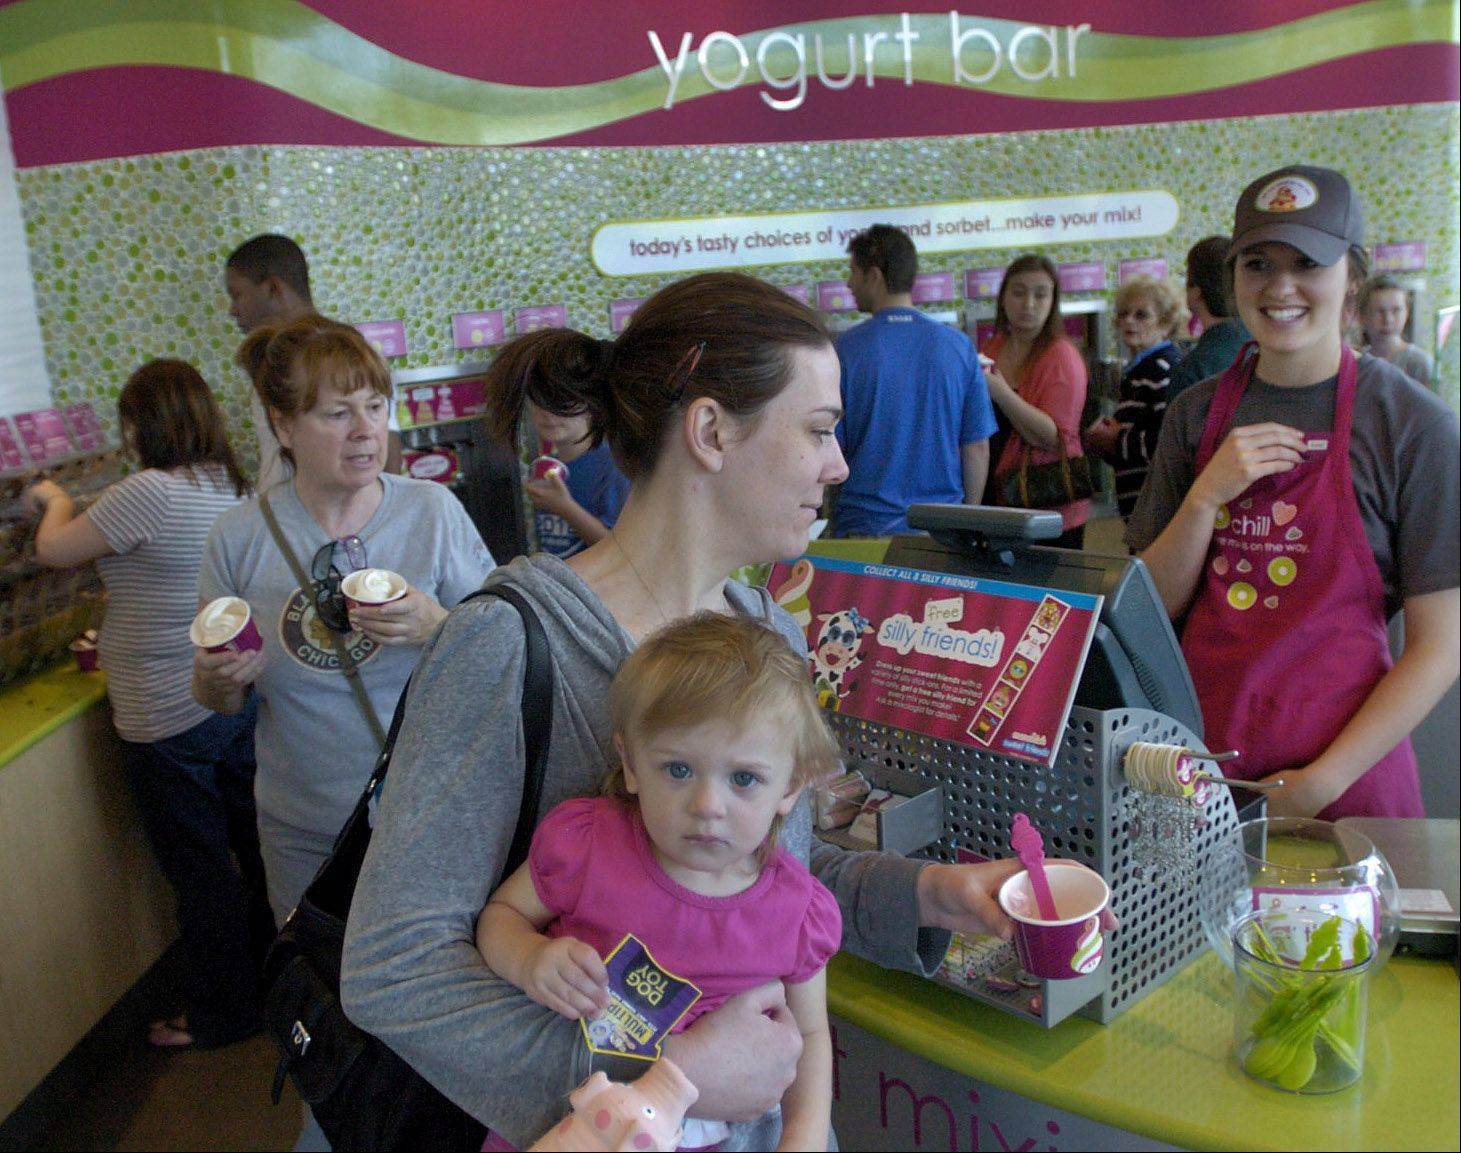 Frozen yogurt vs. ice cream stores in the suburbs